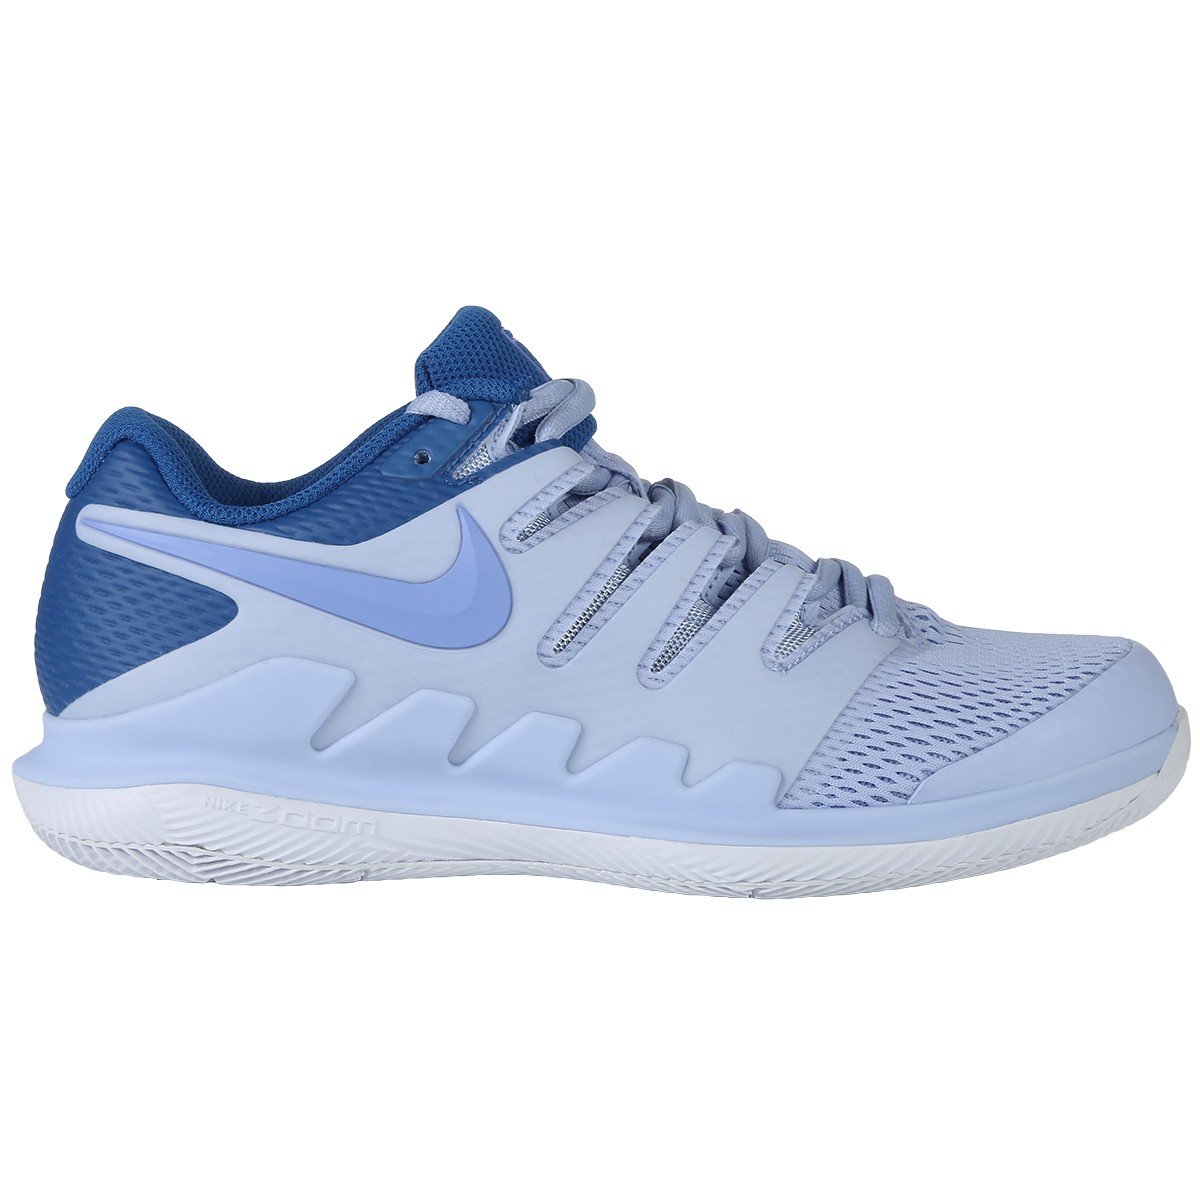 WOMEN'S NIKE AIR ZOOM VAPOR 10 ALL COURT SHOES